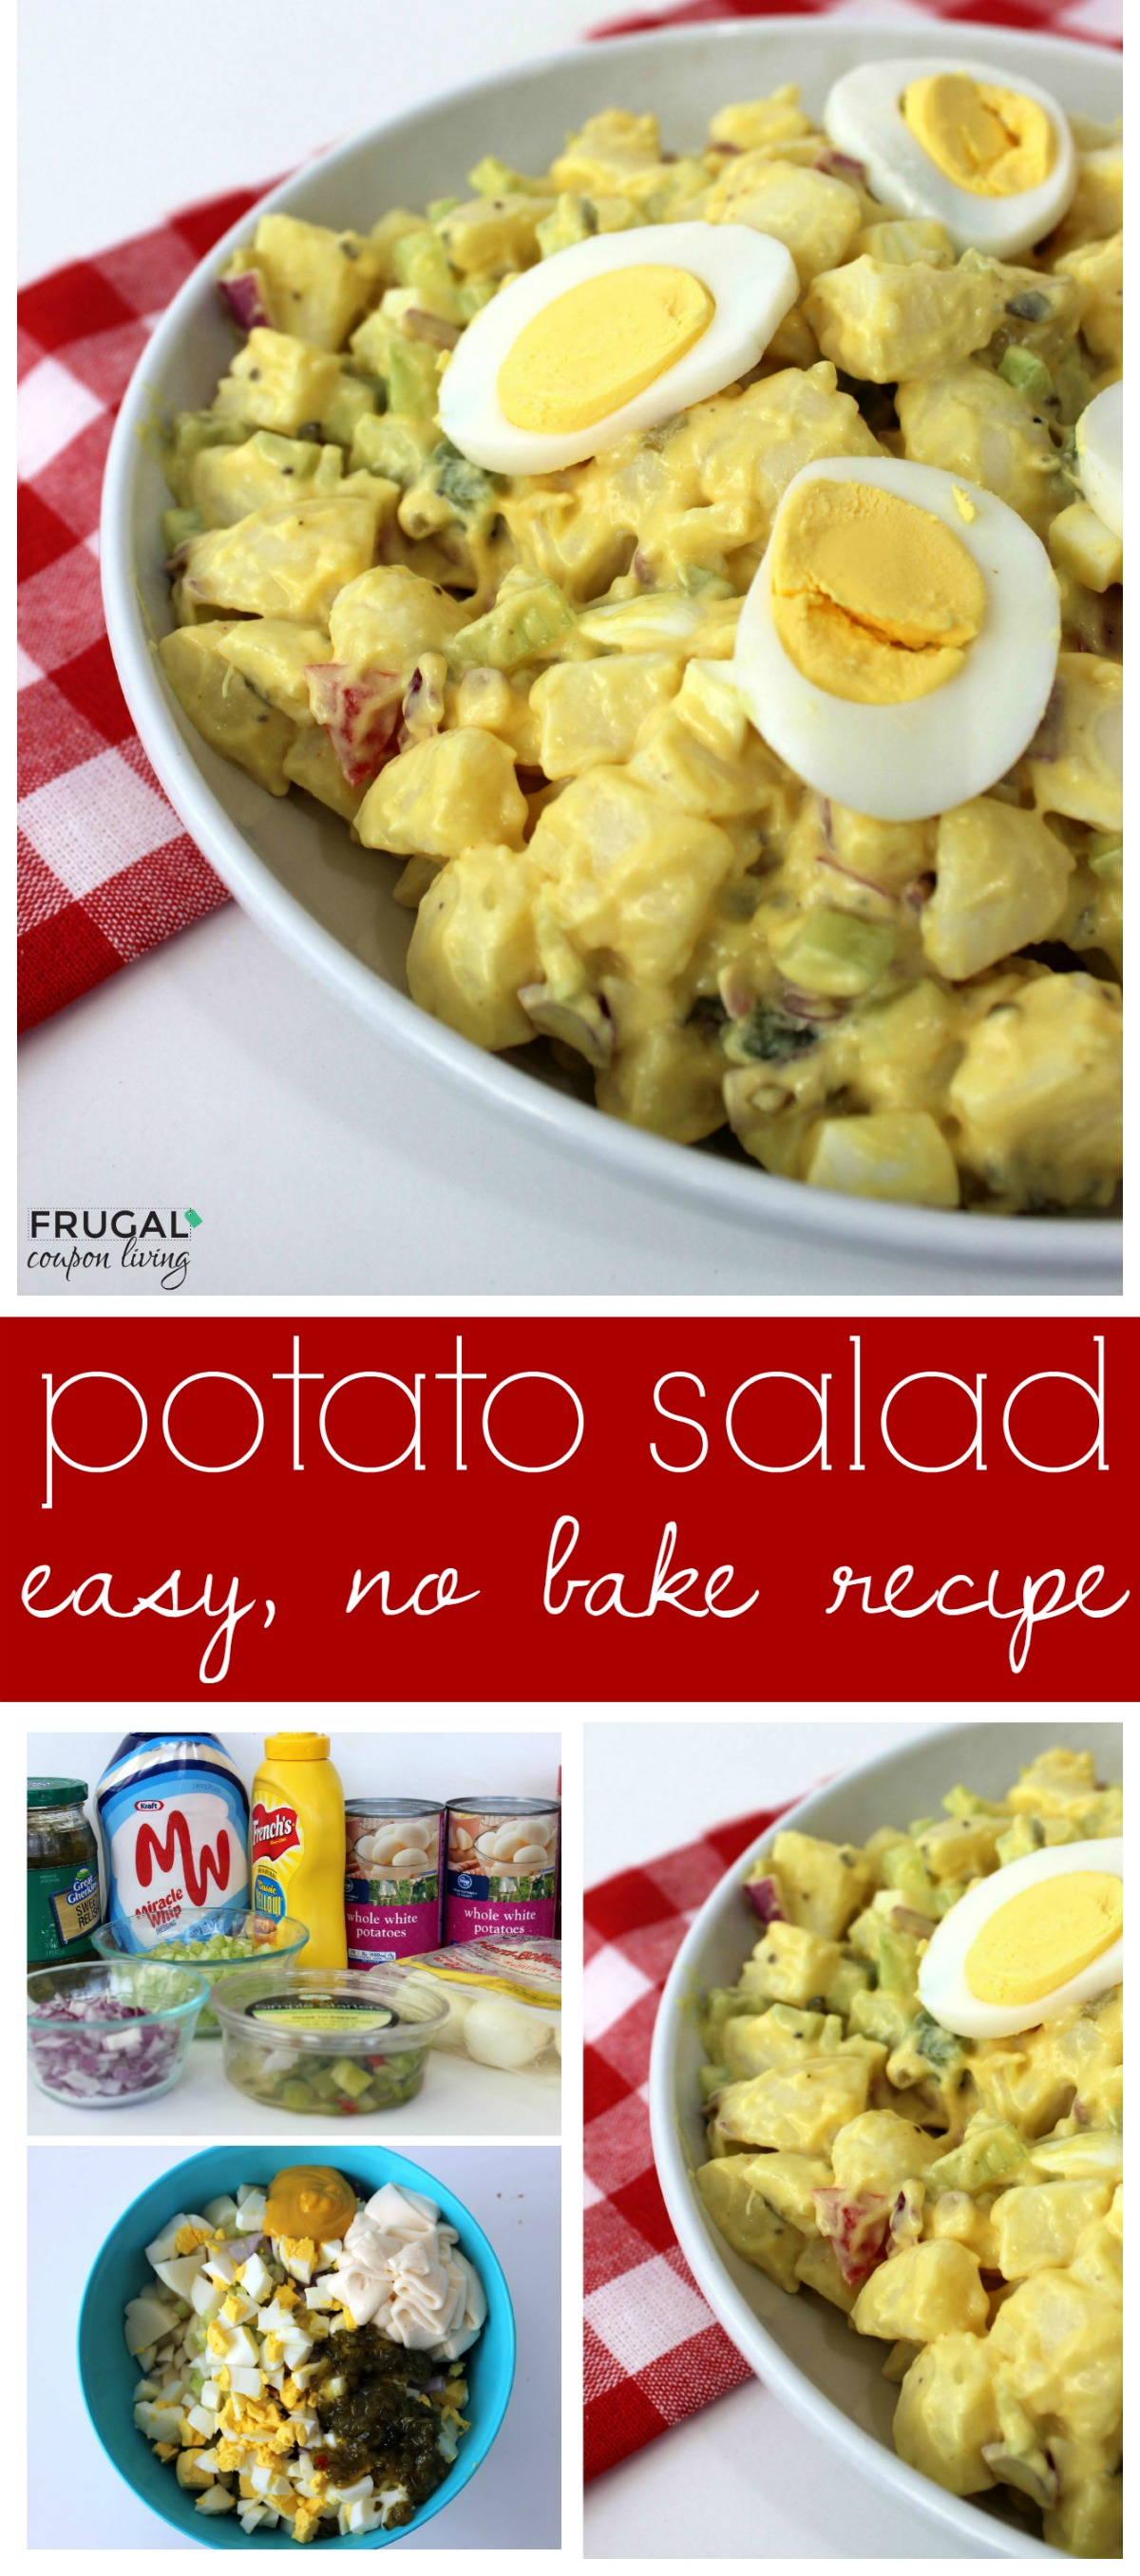 easy-no-bake-potato-salad-recipe-Collage